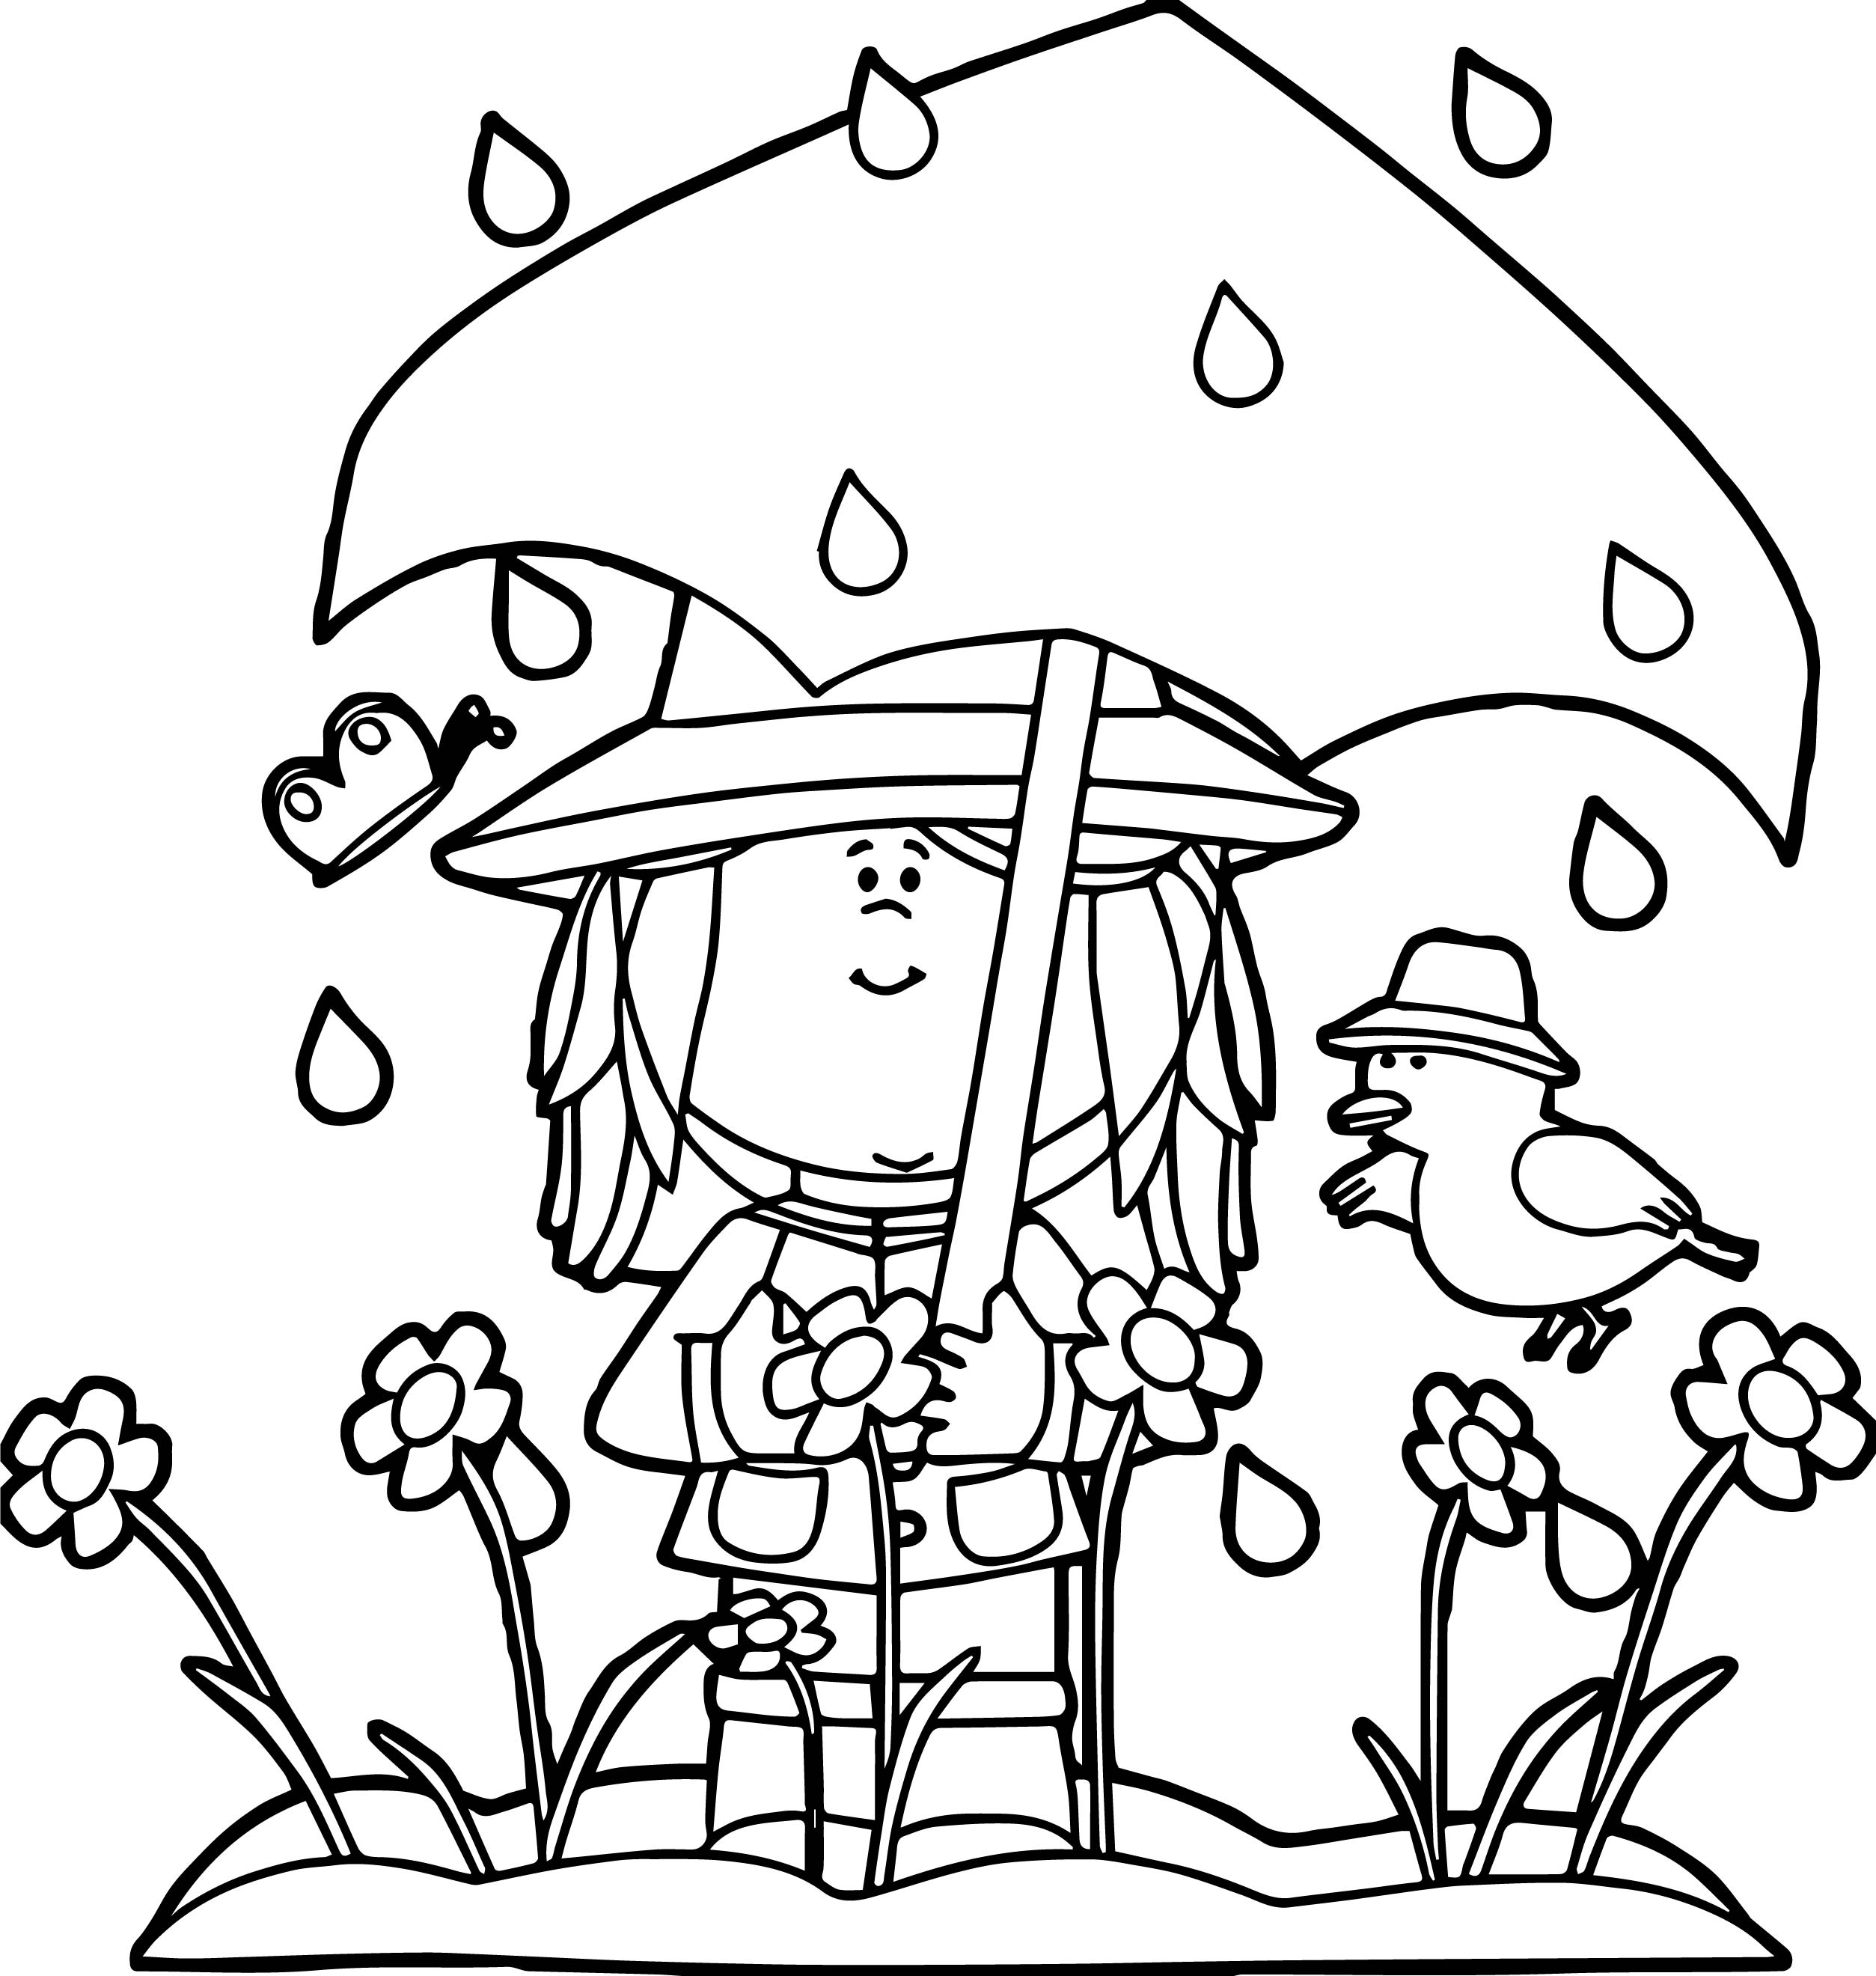 coloring pages about spring - spring showers coloring page